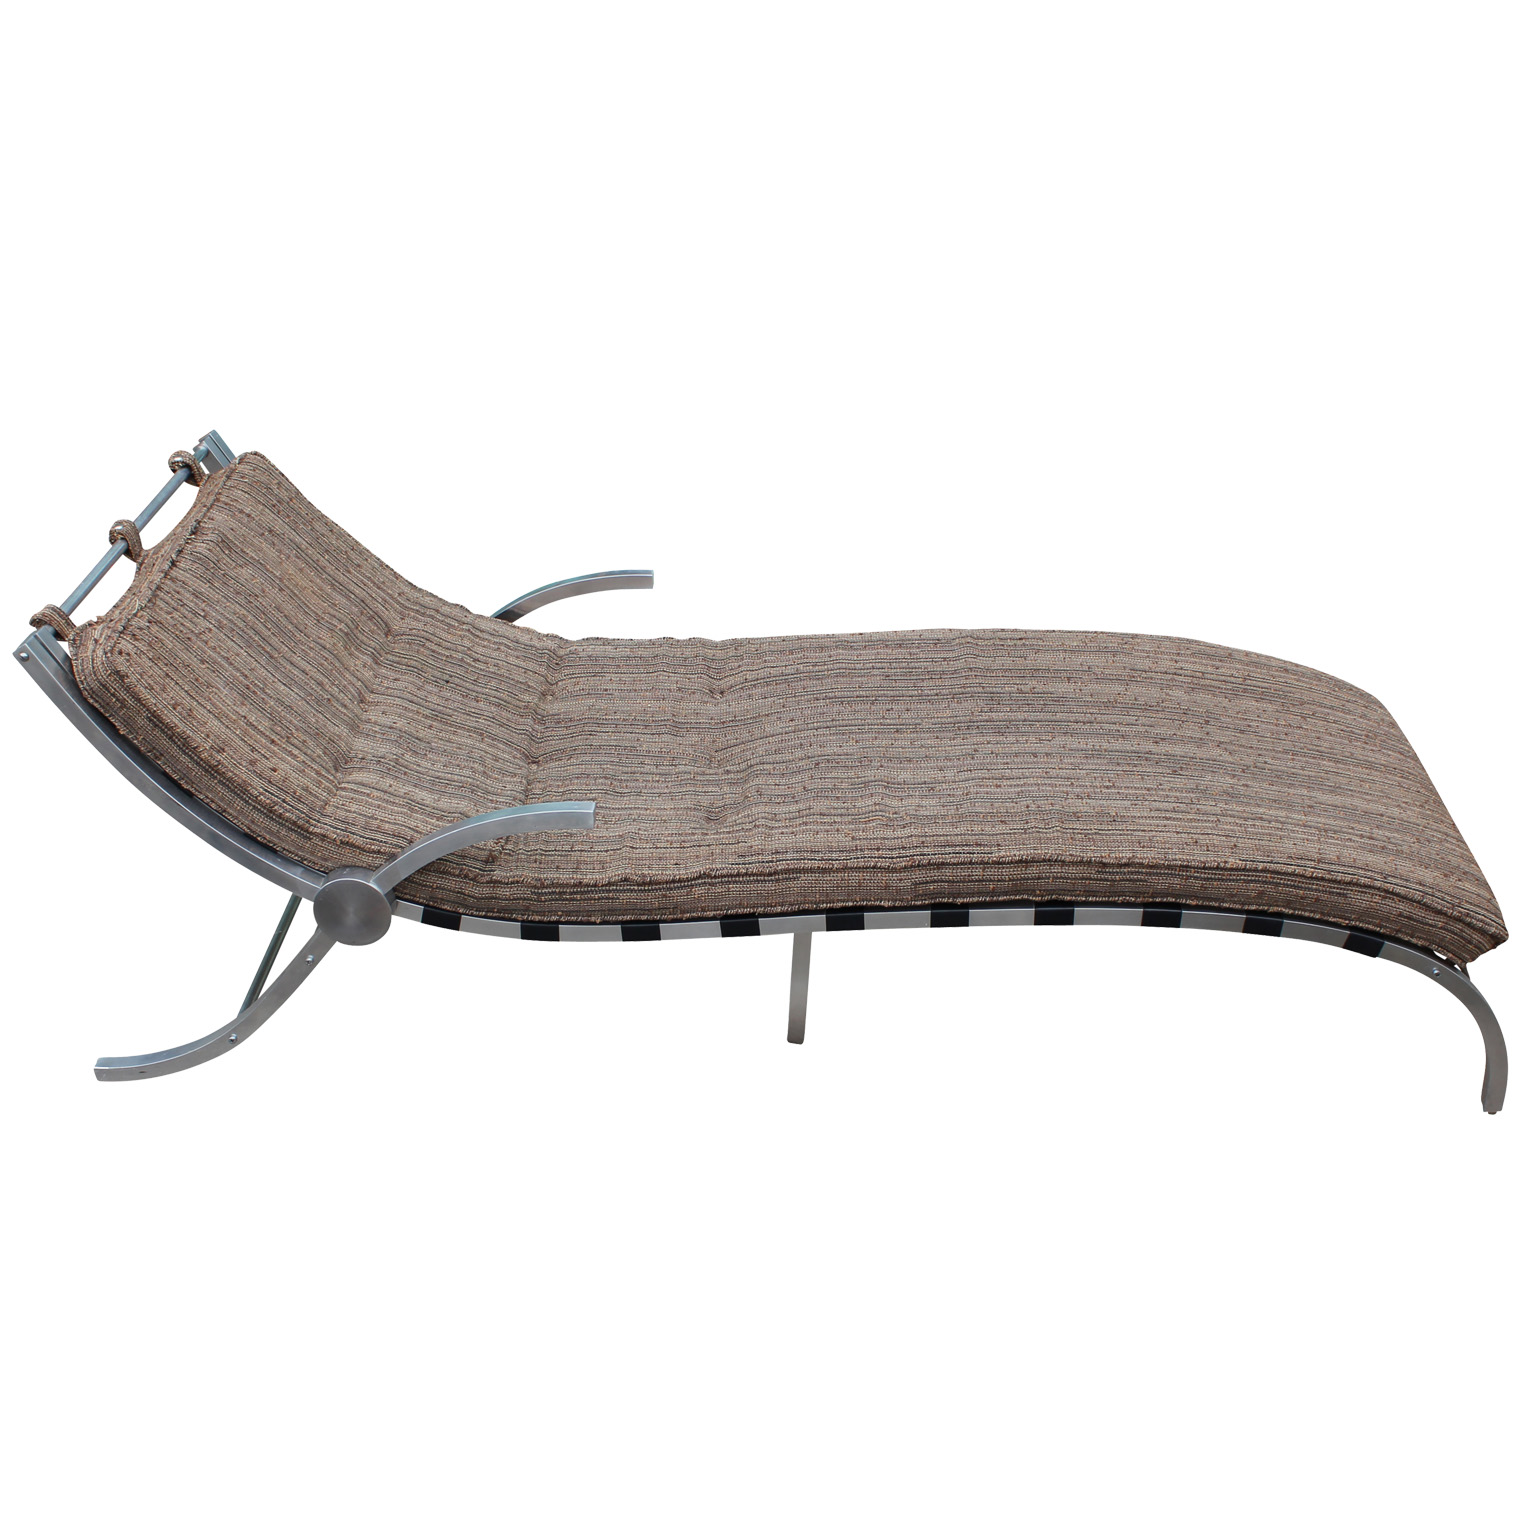 Sculptural aluminum chaise lounge for Aluminum chaise lounges